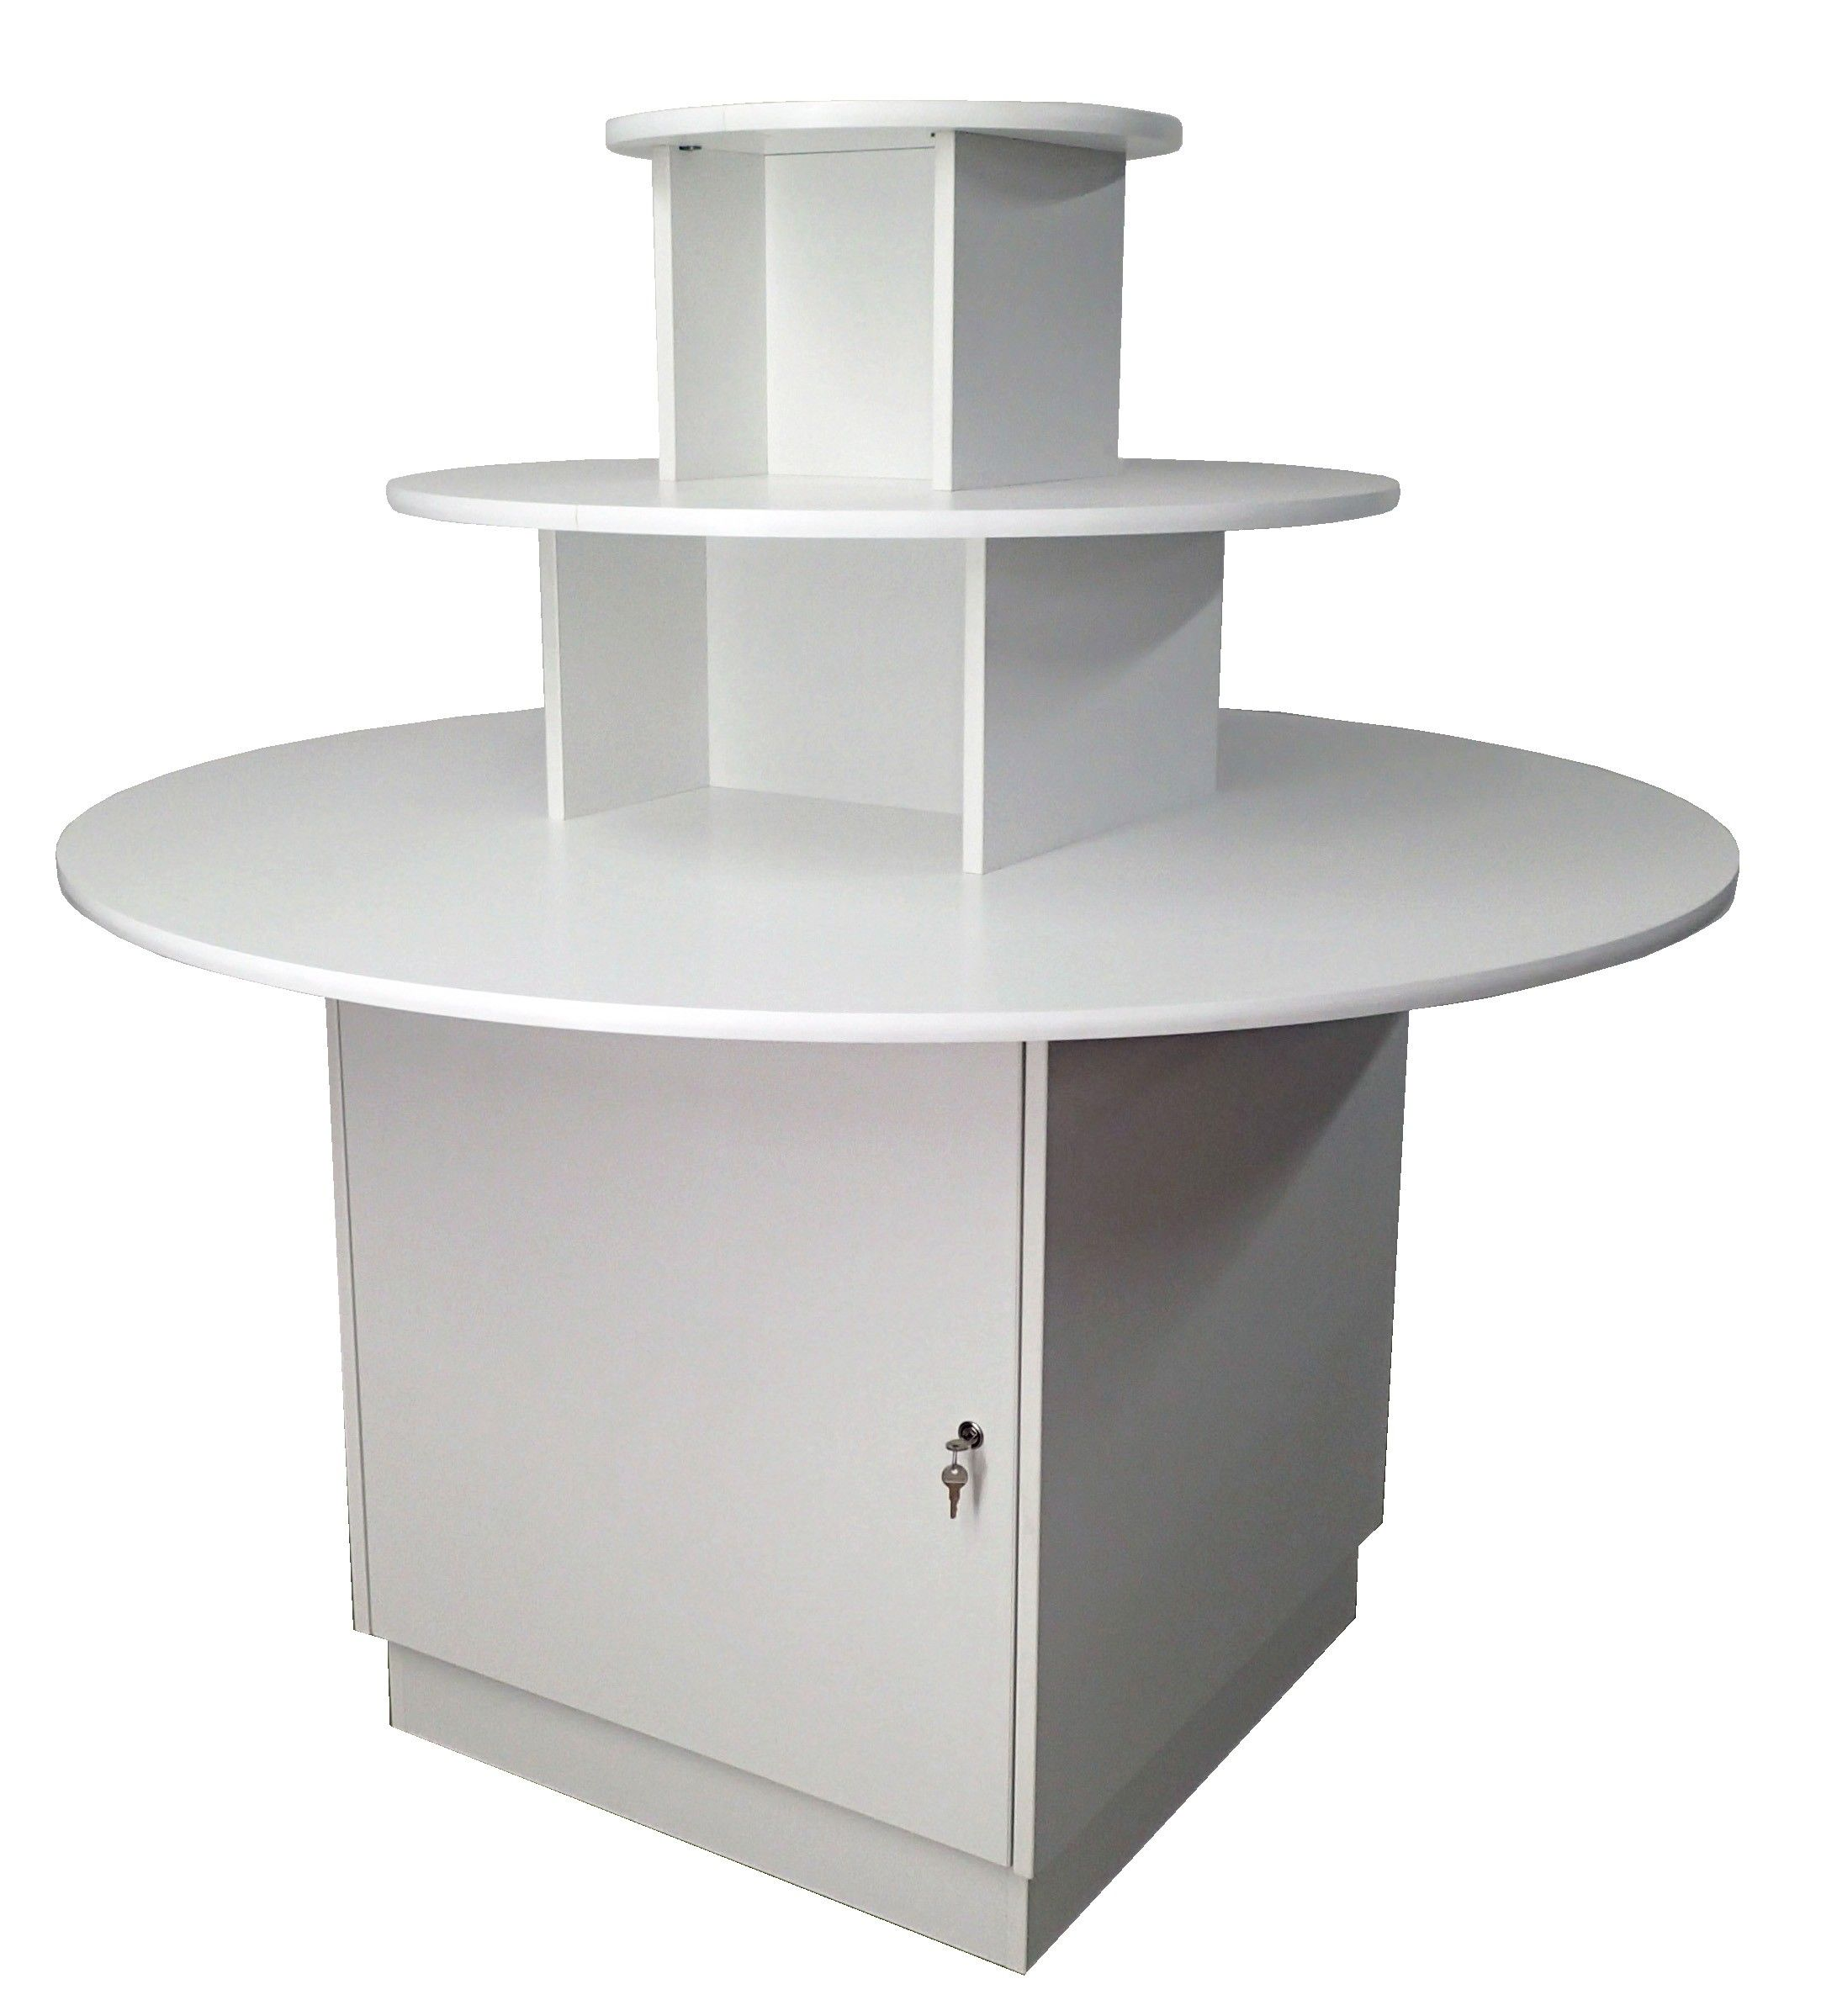 Three Tier Round Display Table We Could Use The Gifting With Smaller Tables On Top